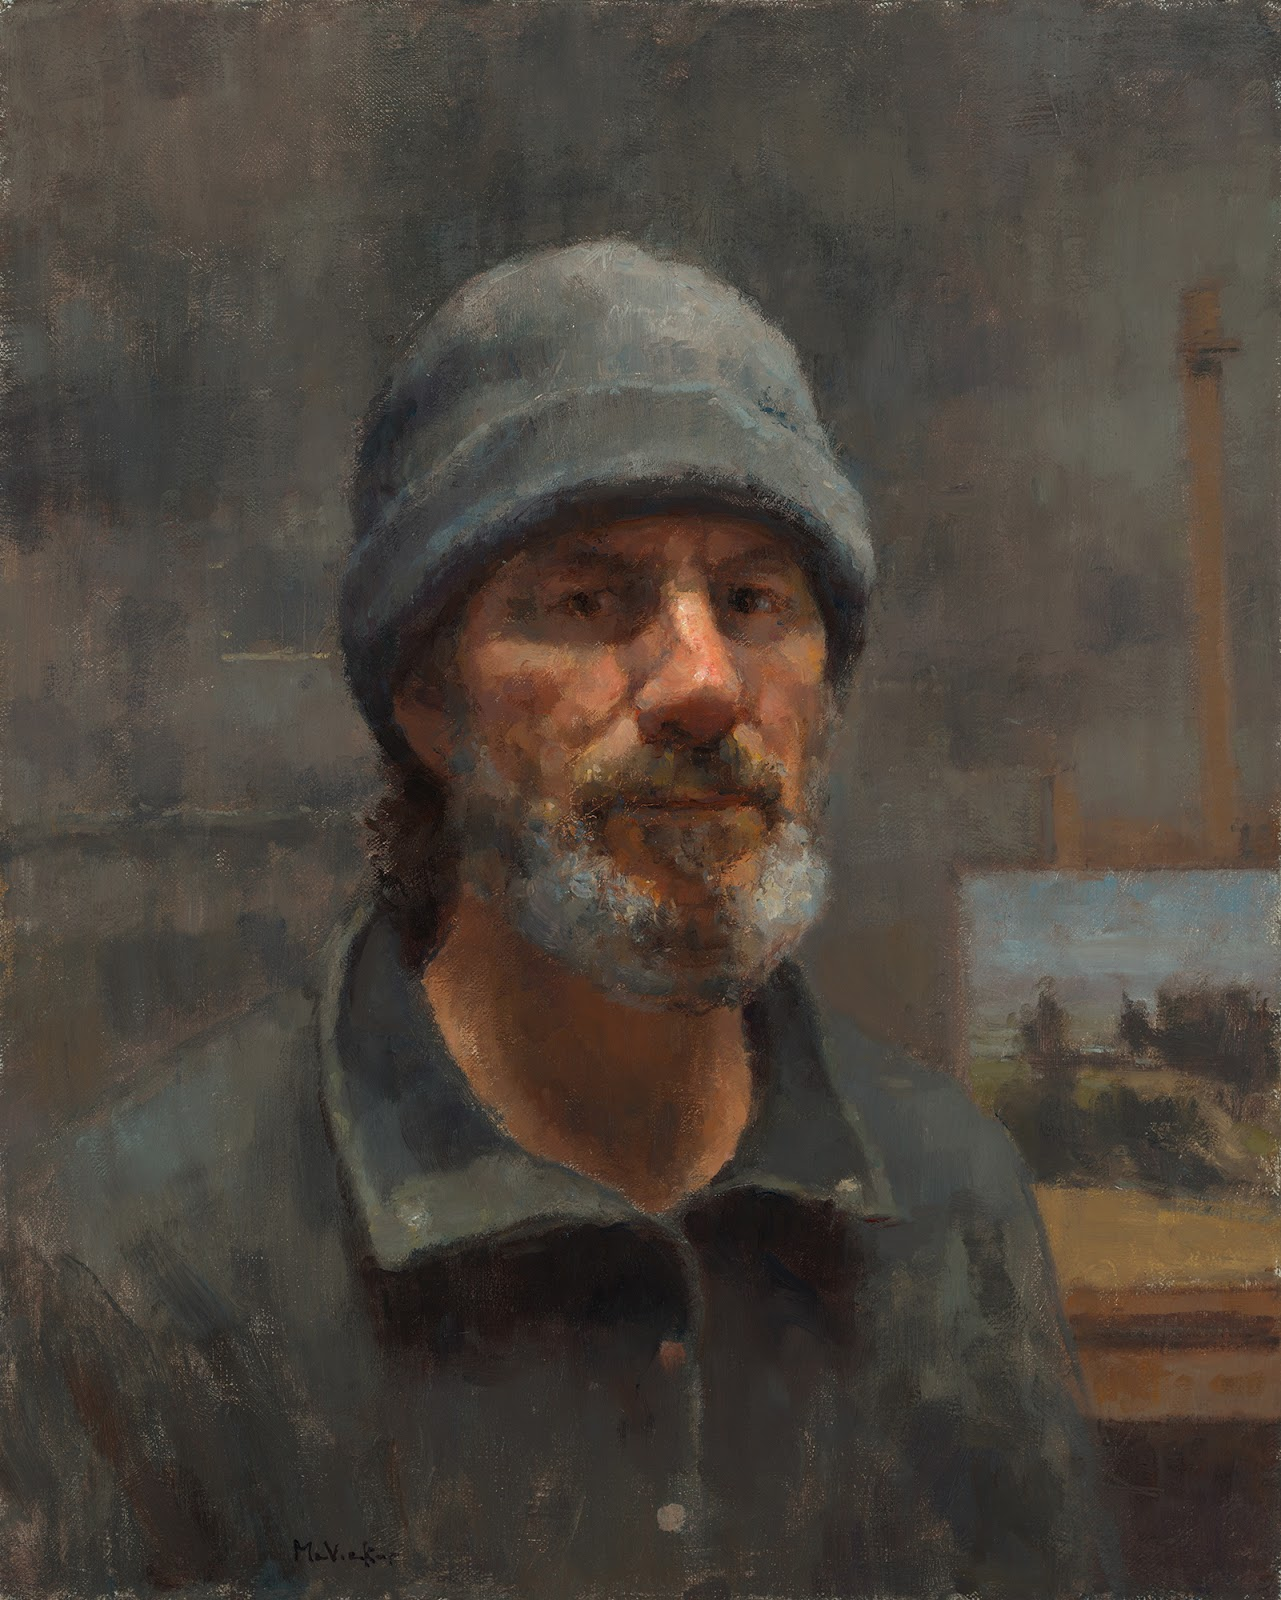 Jim McVicker Paintings: Self Portrait - December 2012